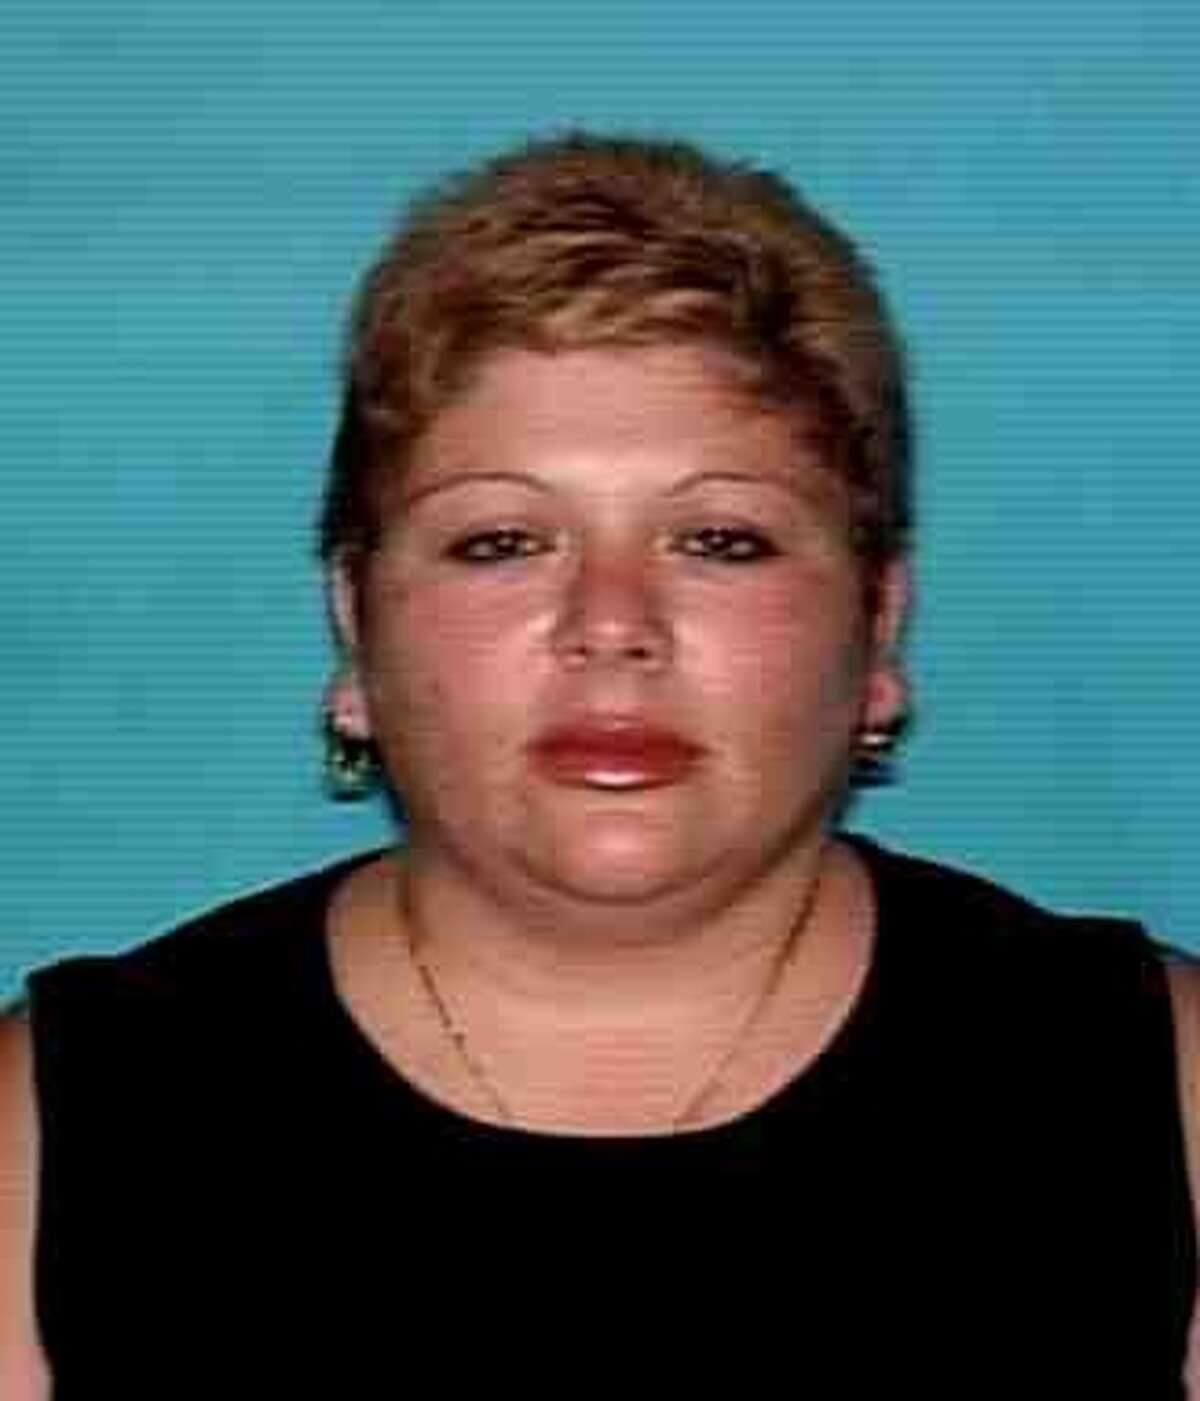 Patricia Flores, 43, is wanted on a warrant for injury to a child - serious bodily injury/omission in Haltom City.